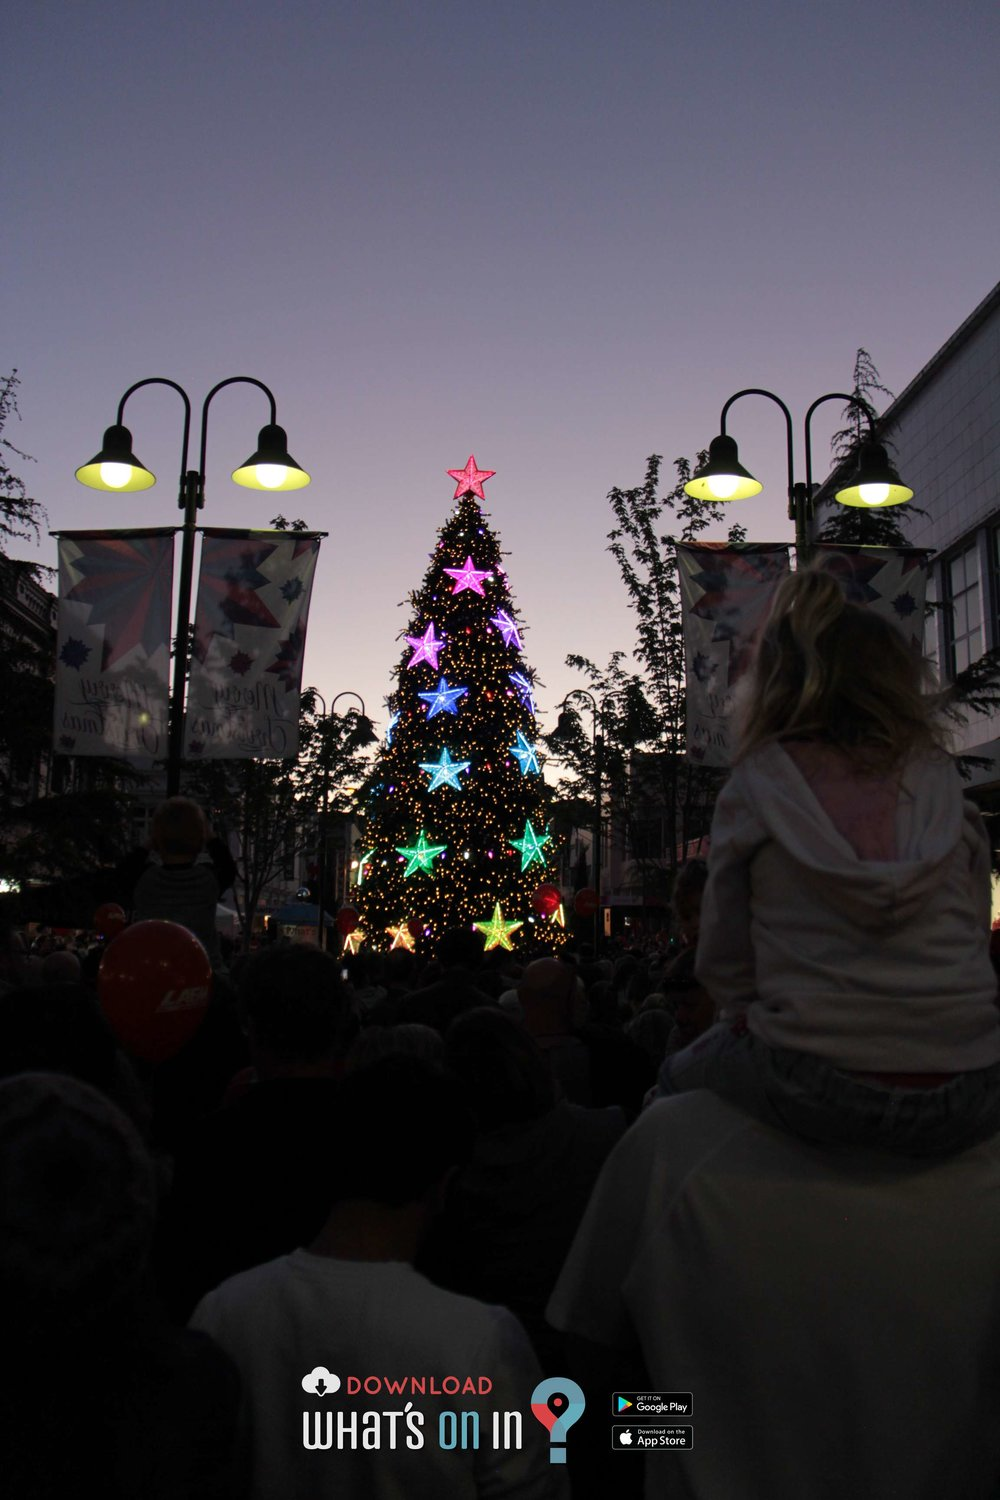 Christmas in the City 2016, Launceston, Tasmania 2016 - What's On In App 351 IMG_8700.jpg